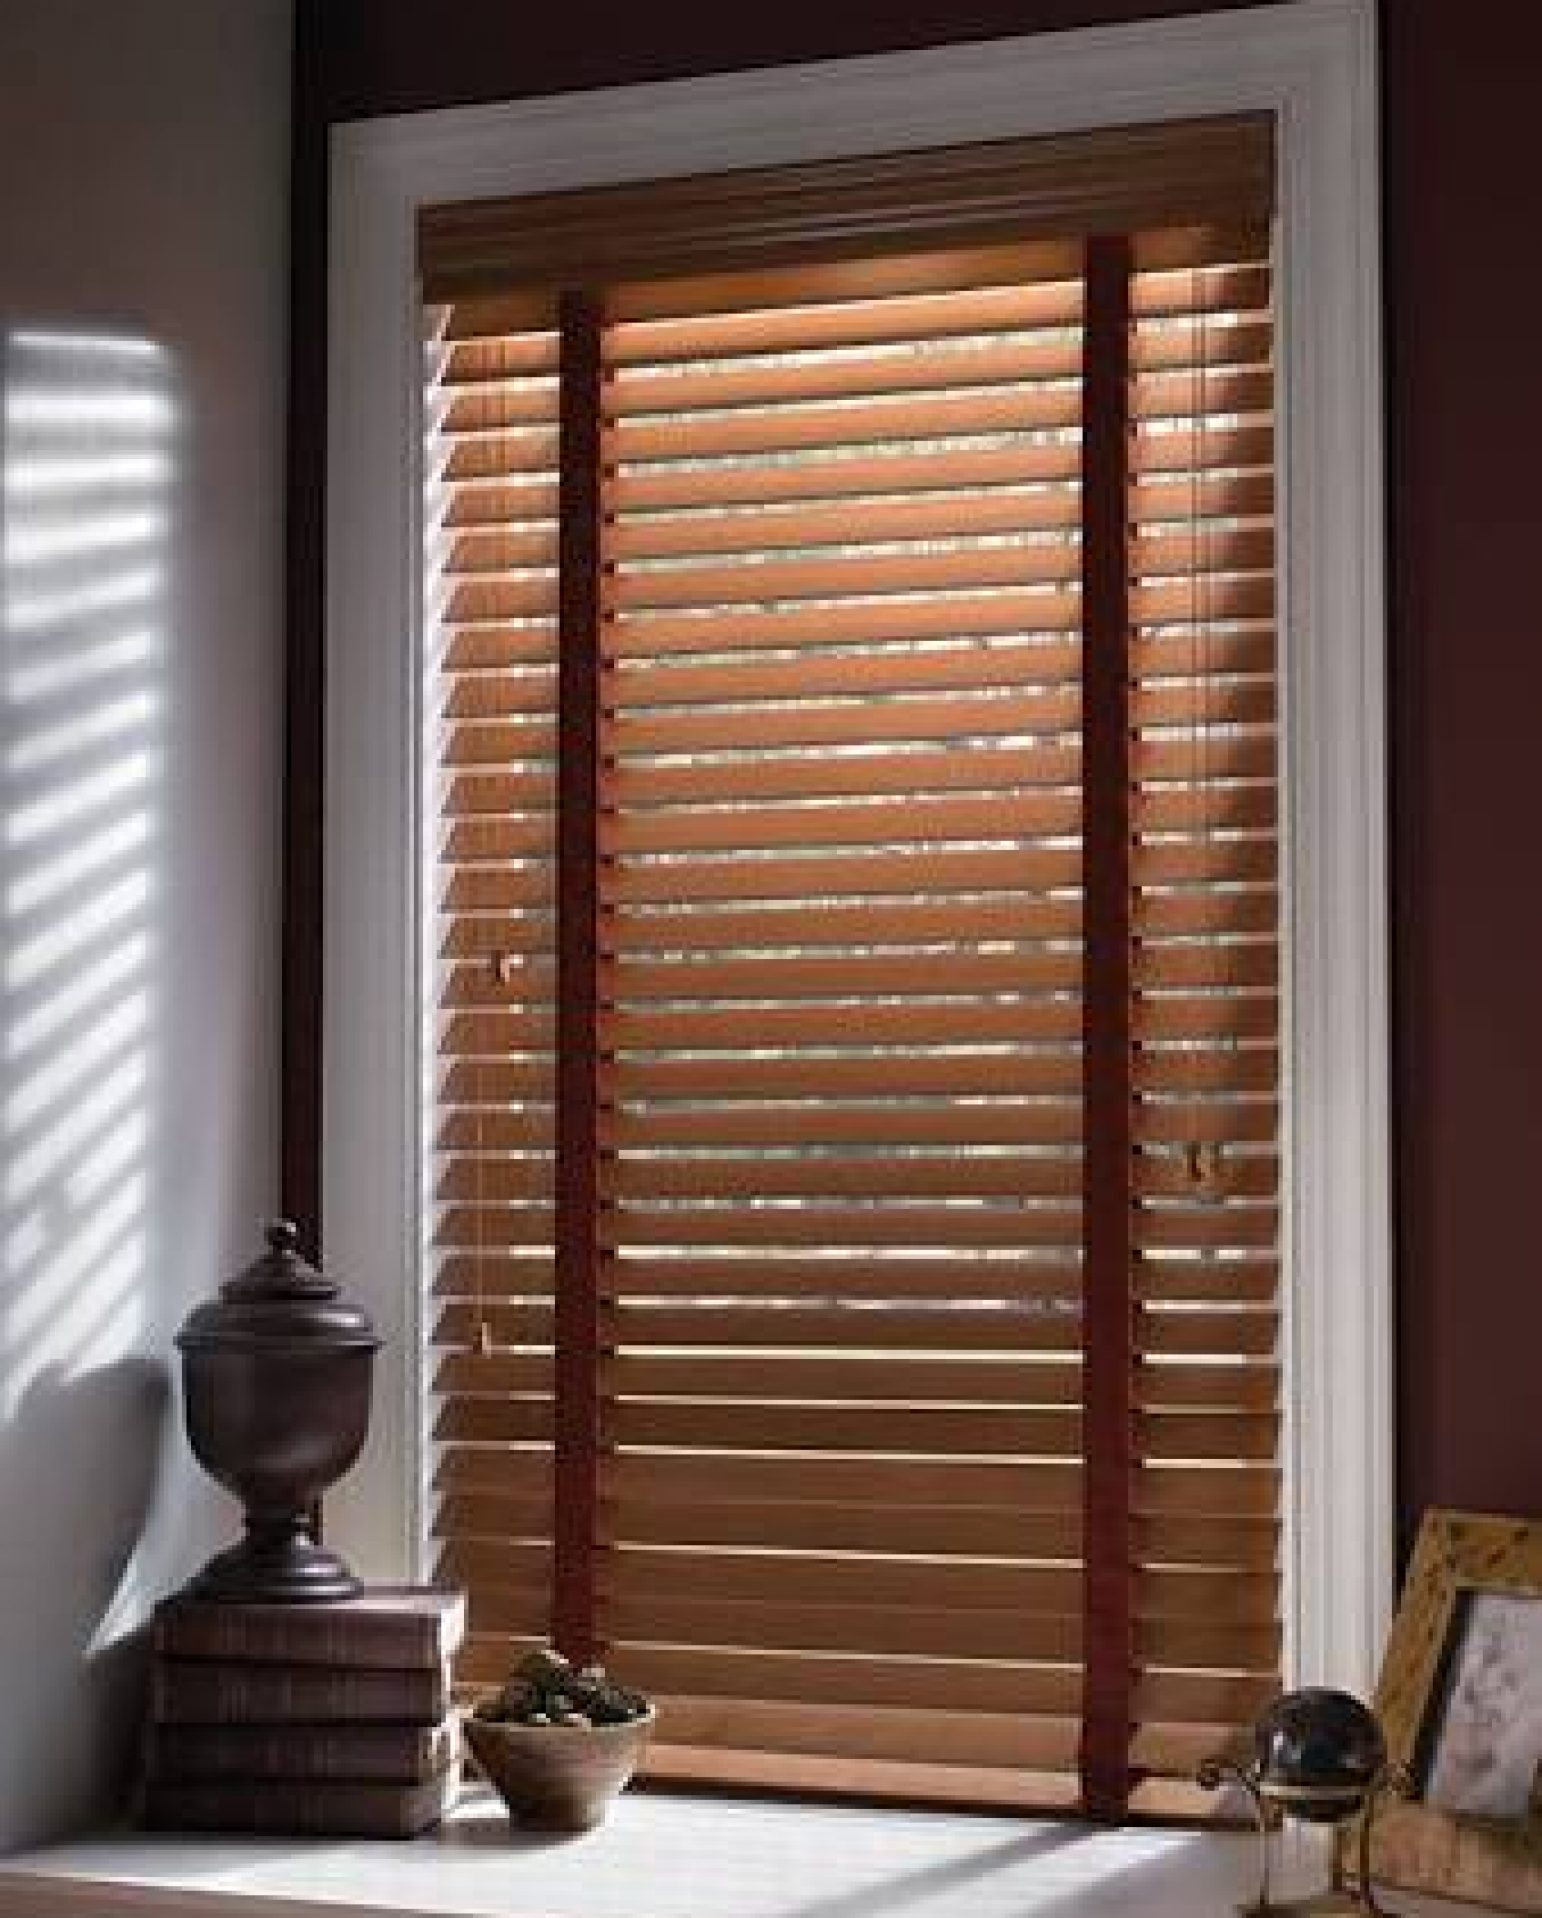 Promo Wooden Blinds Mulai Rp.395.000/m2